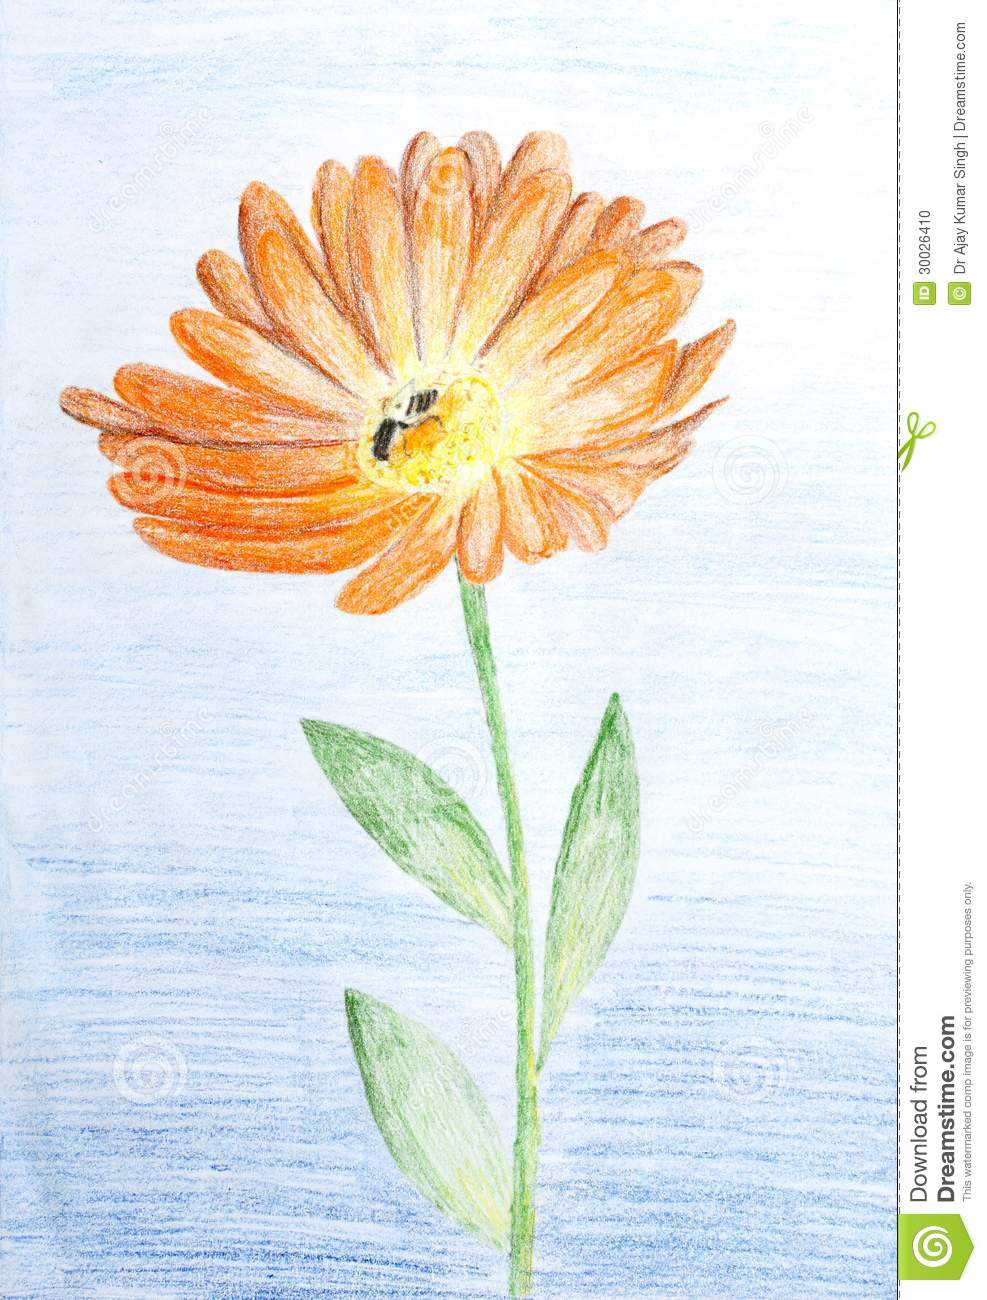 pencil sketch of calendula flower stock illustration